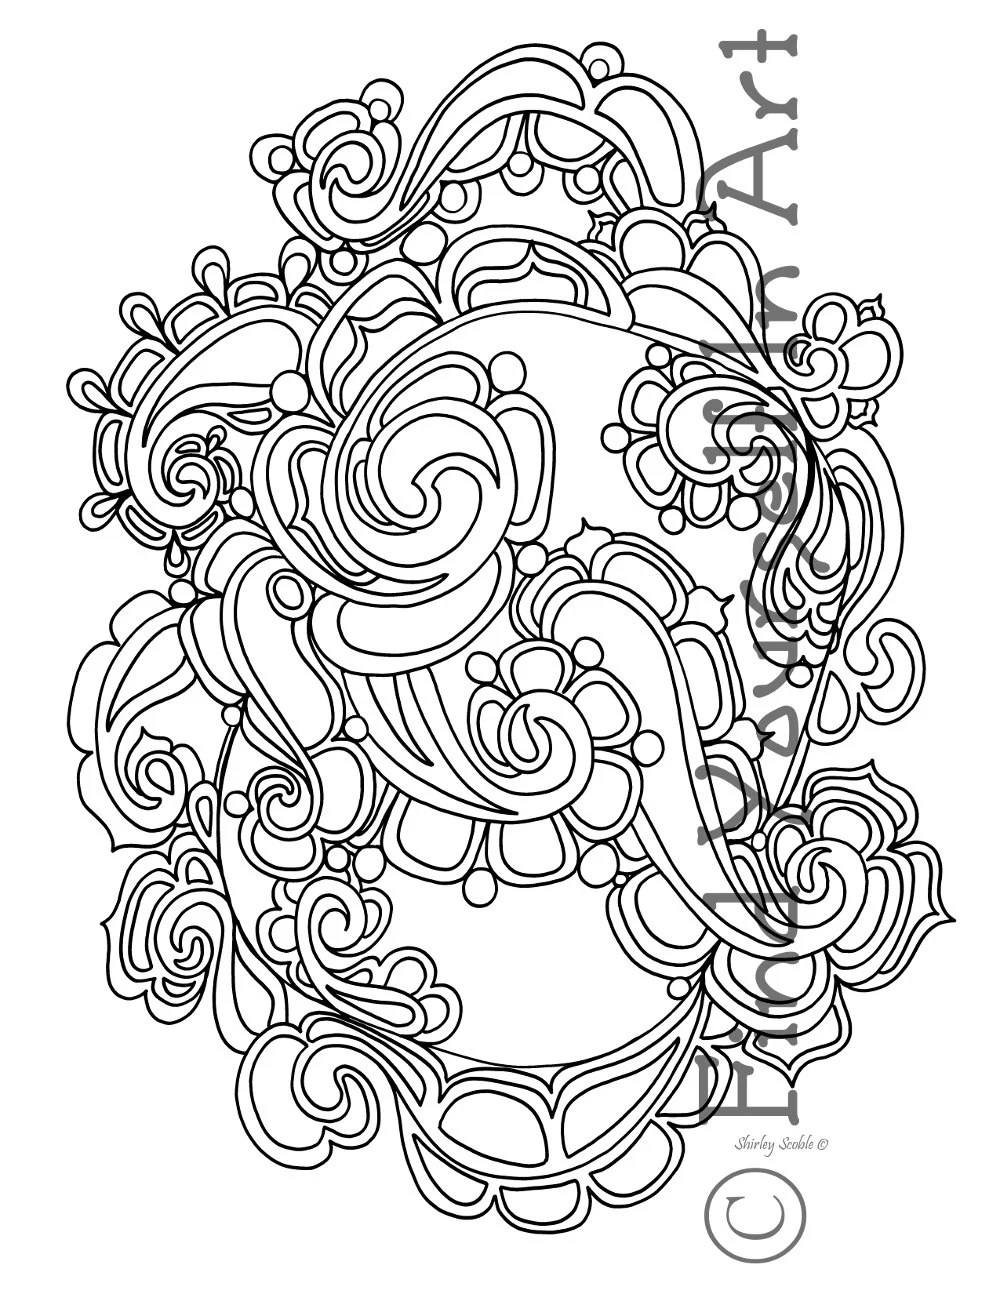 Adult Coloring Pages Entwined Paisley Freehand Pen